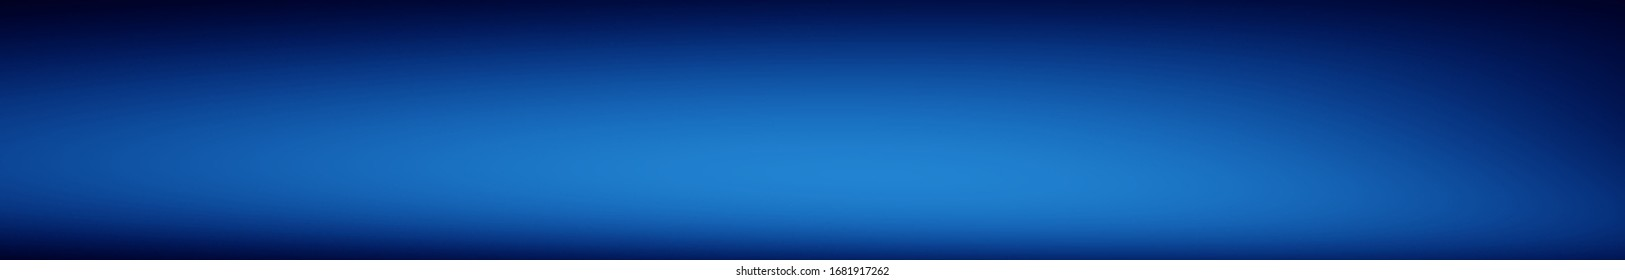 Background Navy Blue technology art horizontal abstract illustration